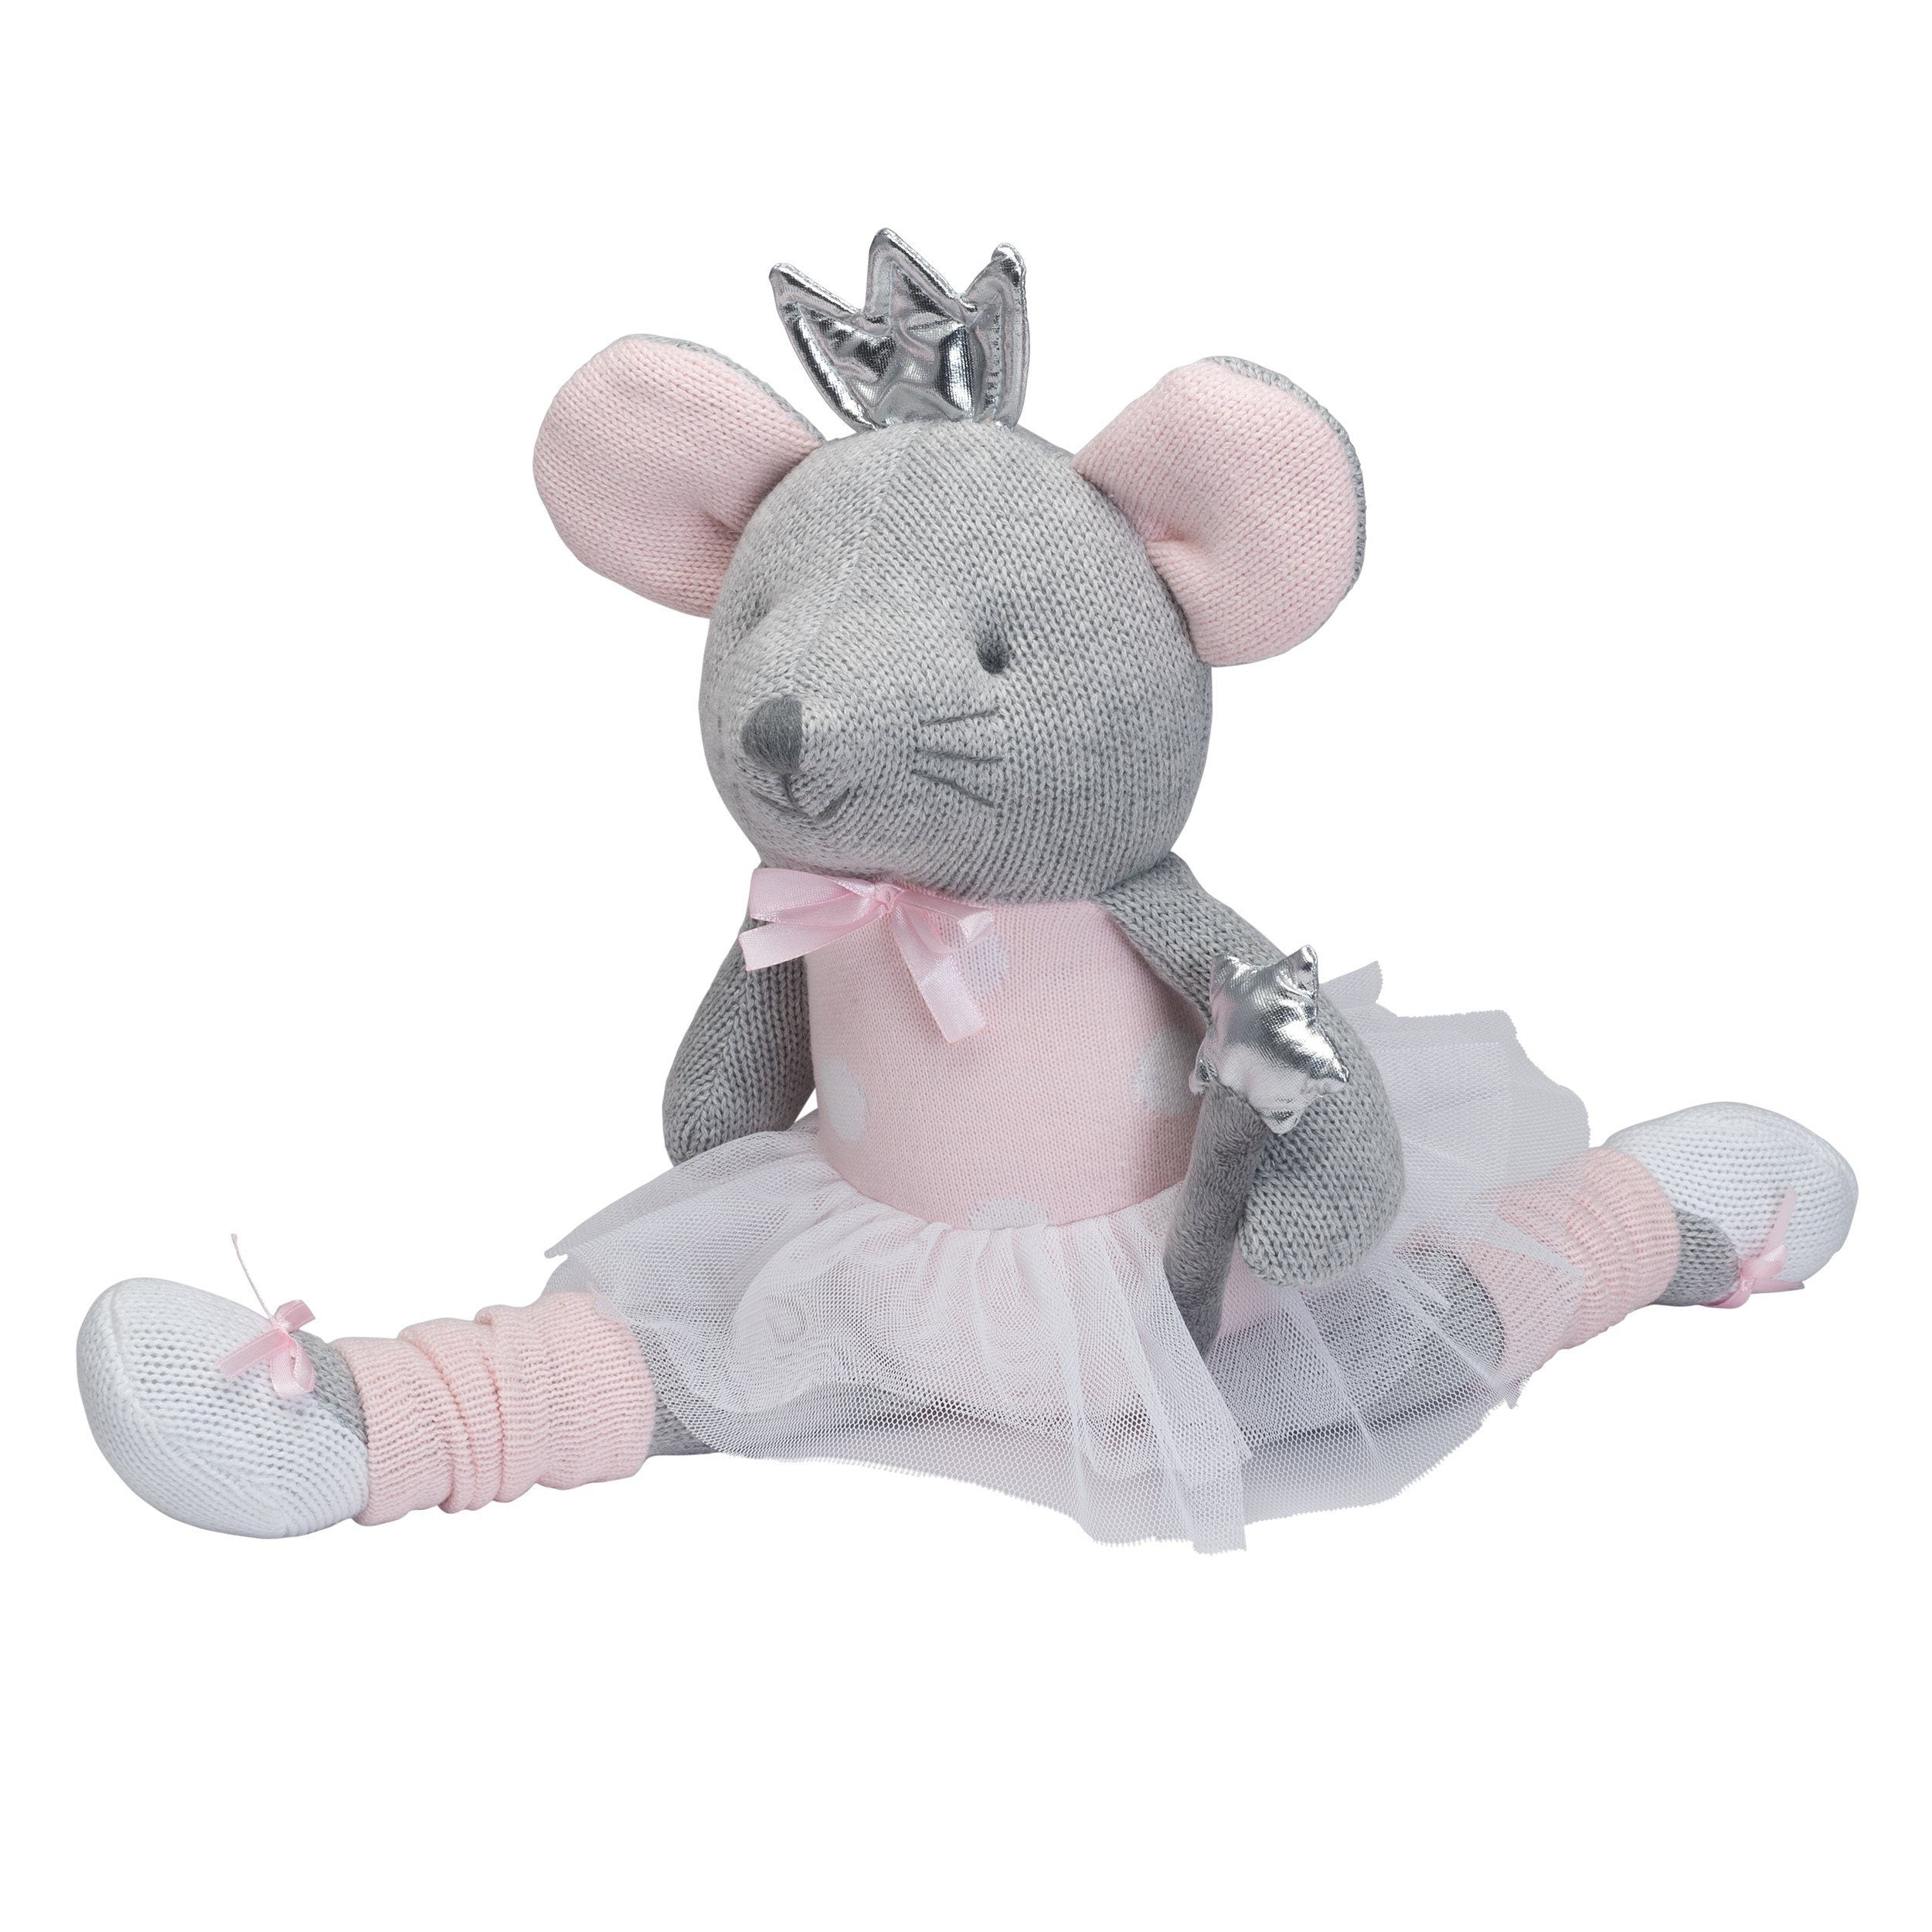 Princess Mouse Knittie Bittie Toy - Project Nursery